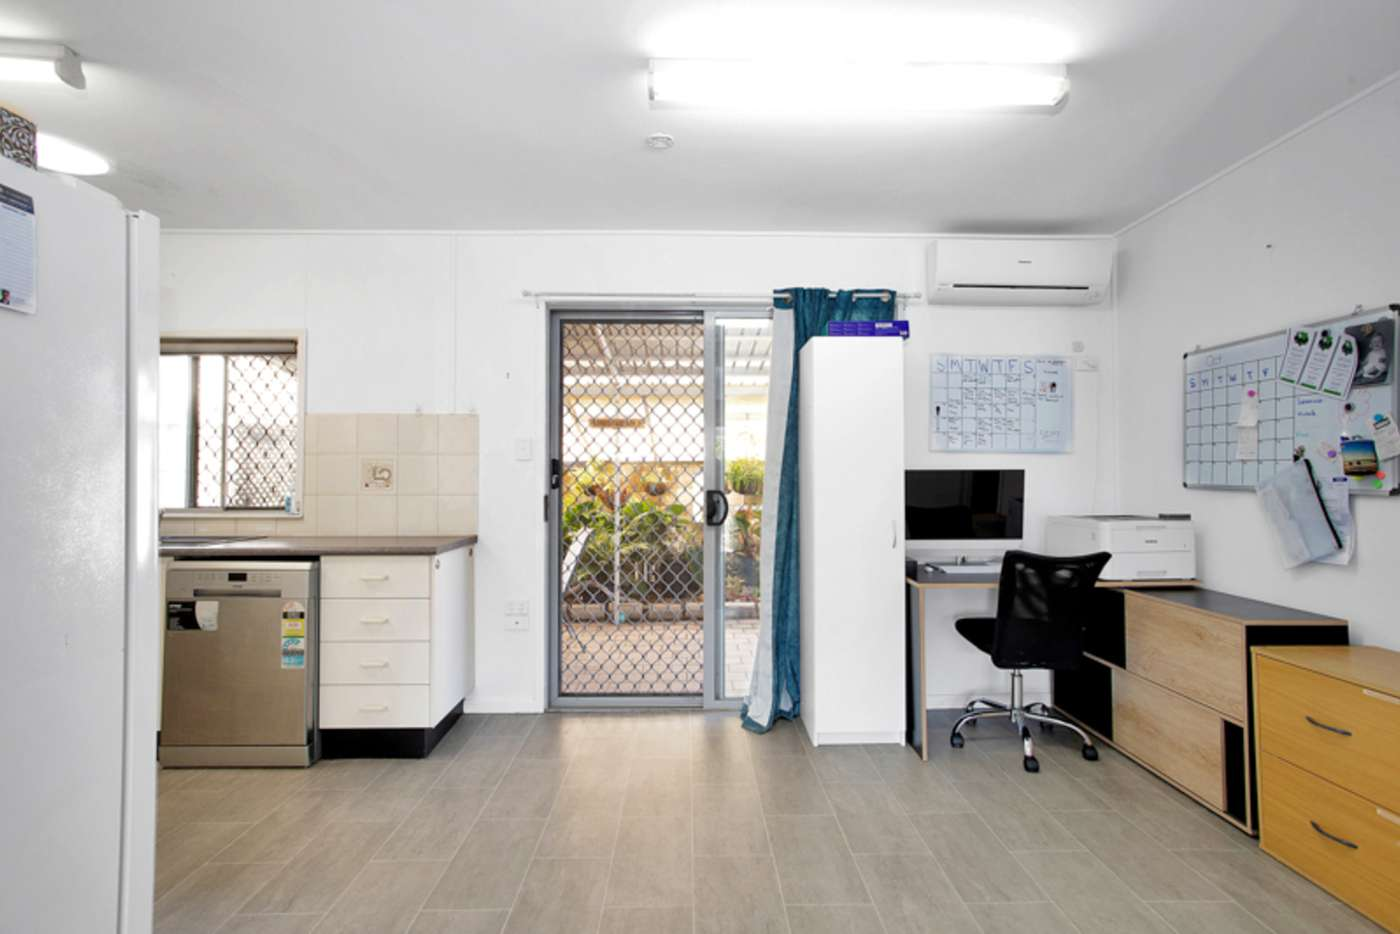 Sixth view of Homely house listing, 1 Stopher Court, Beaconsfield QLD 4740